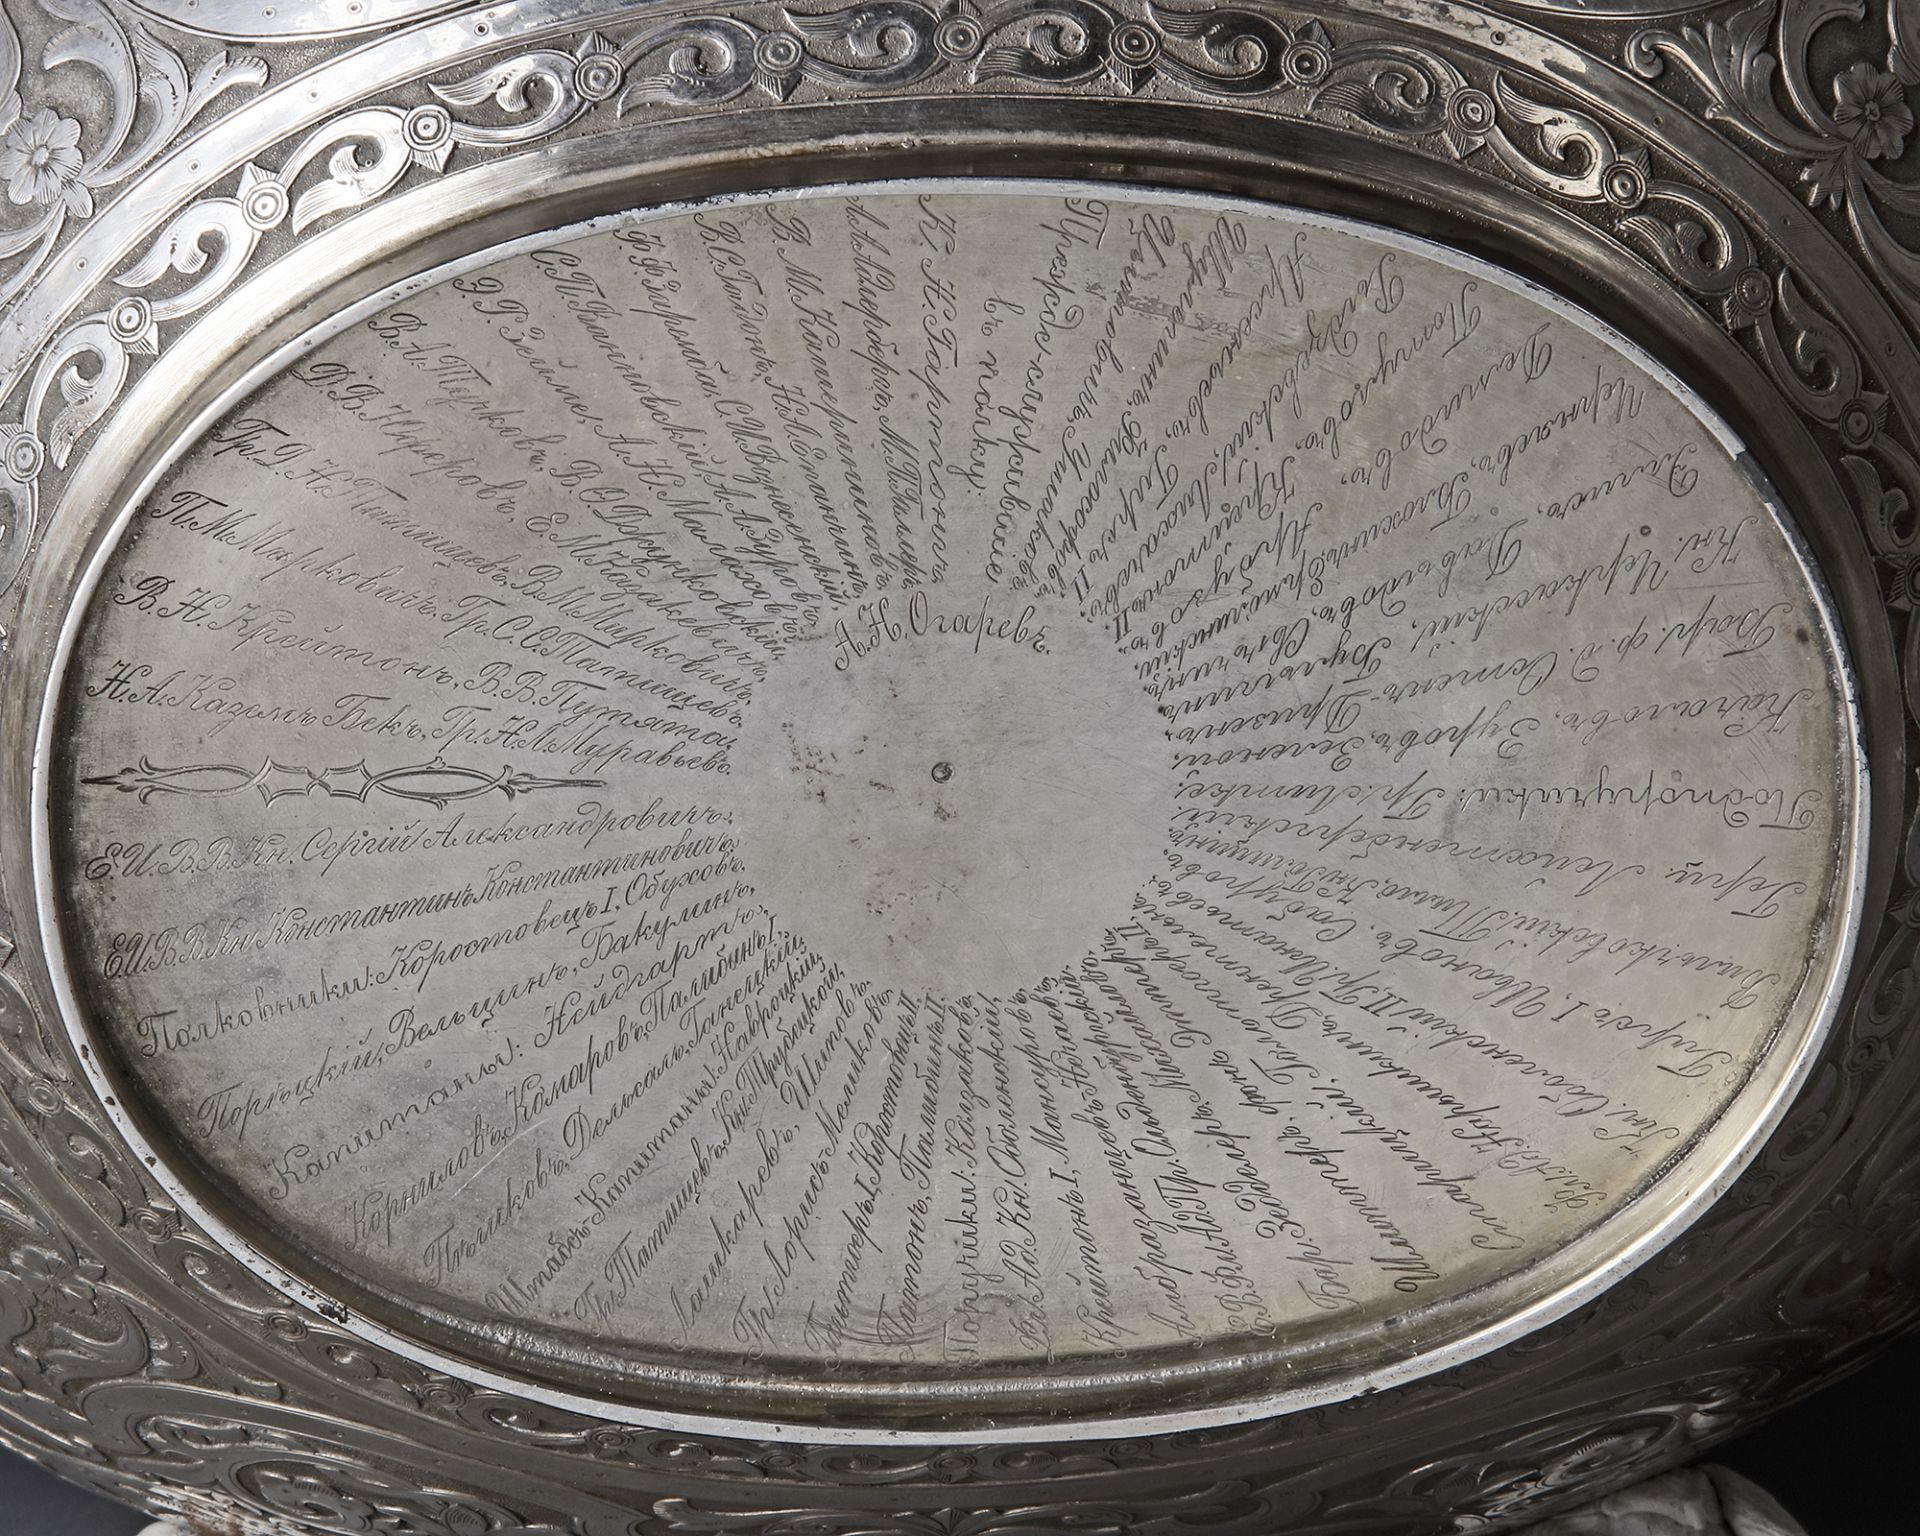 A LARGE RUSSIAN IMPERIAL SILVER KOVSCH BOWL, LATE 19TH CENTURY - Image 2 of 8